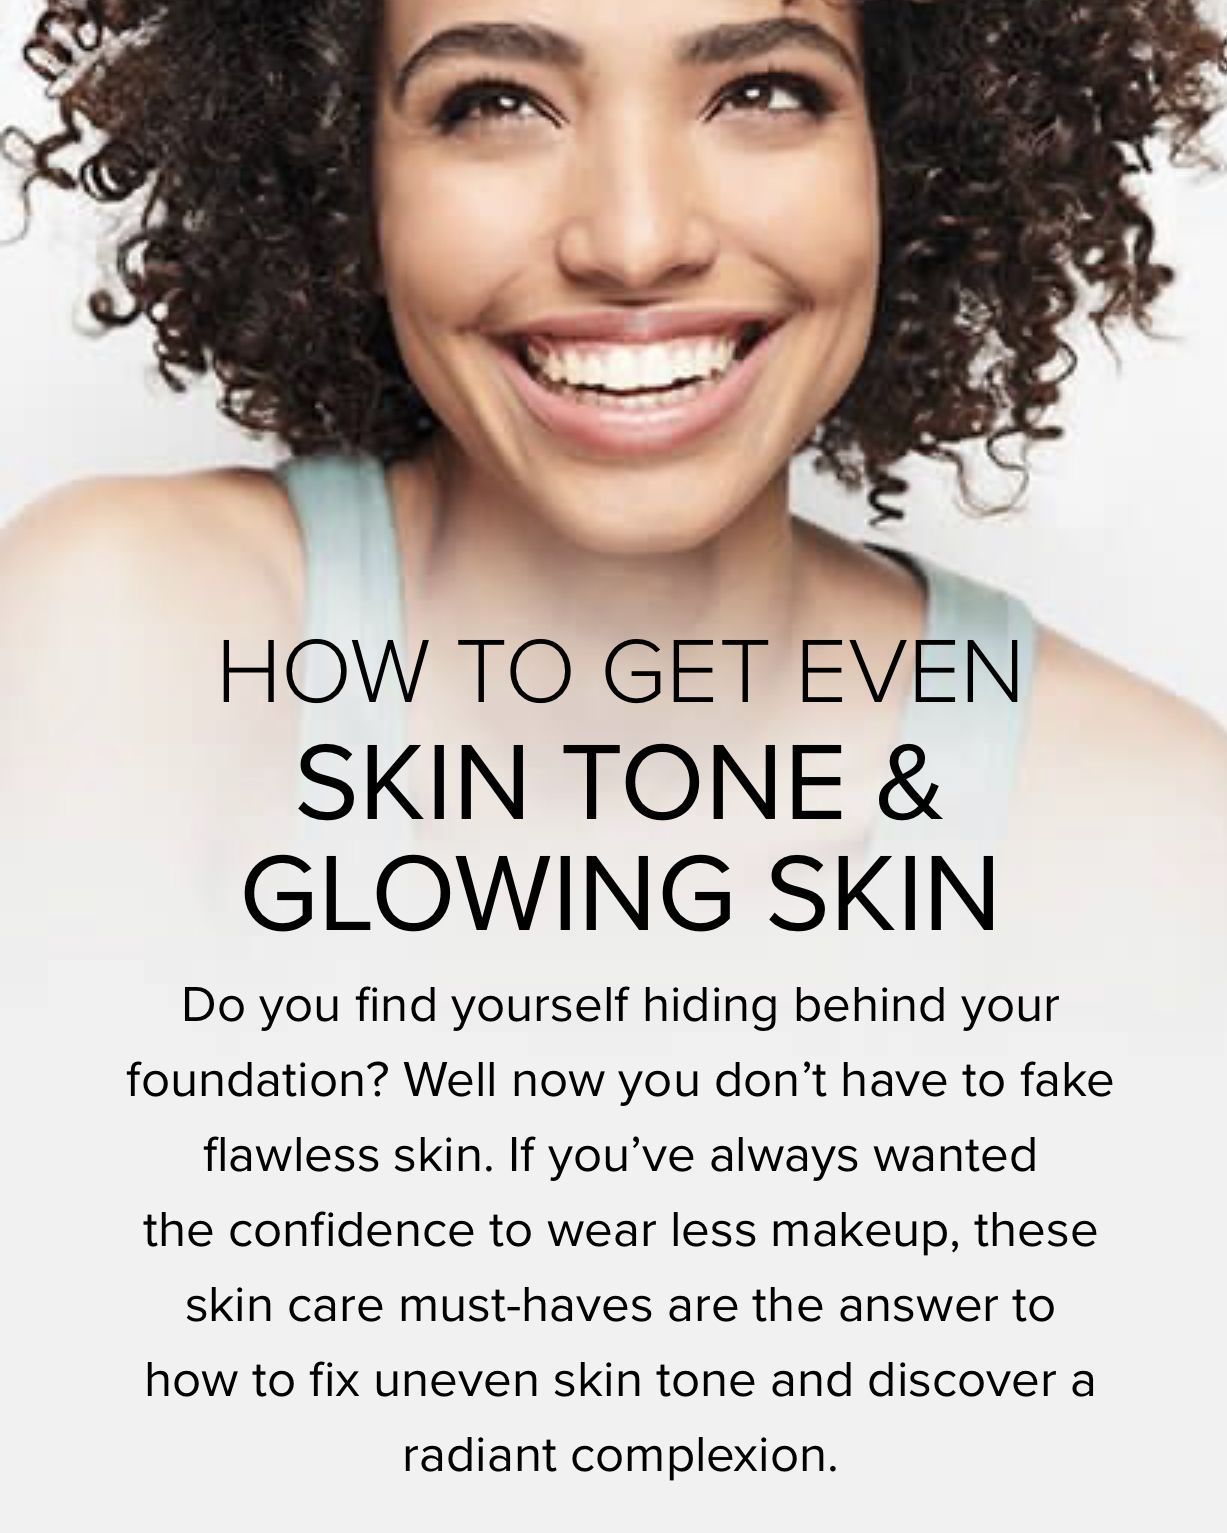 How To Get Even Skin Tone And Glowing Skin Natural Glowing Skin Even Skin Tone Glowing Skin